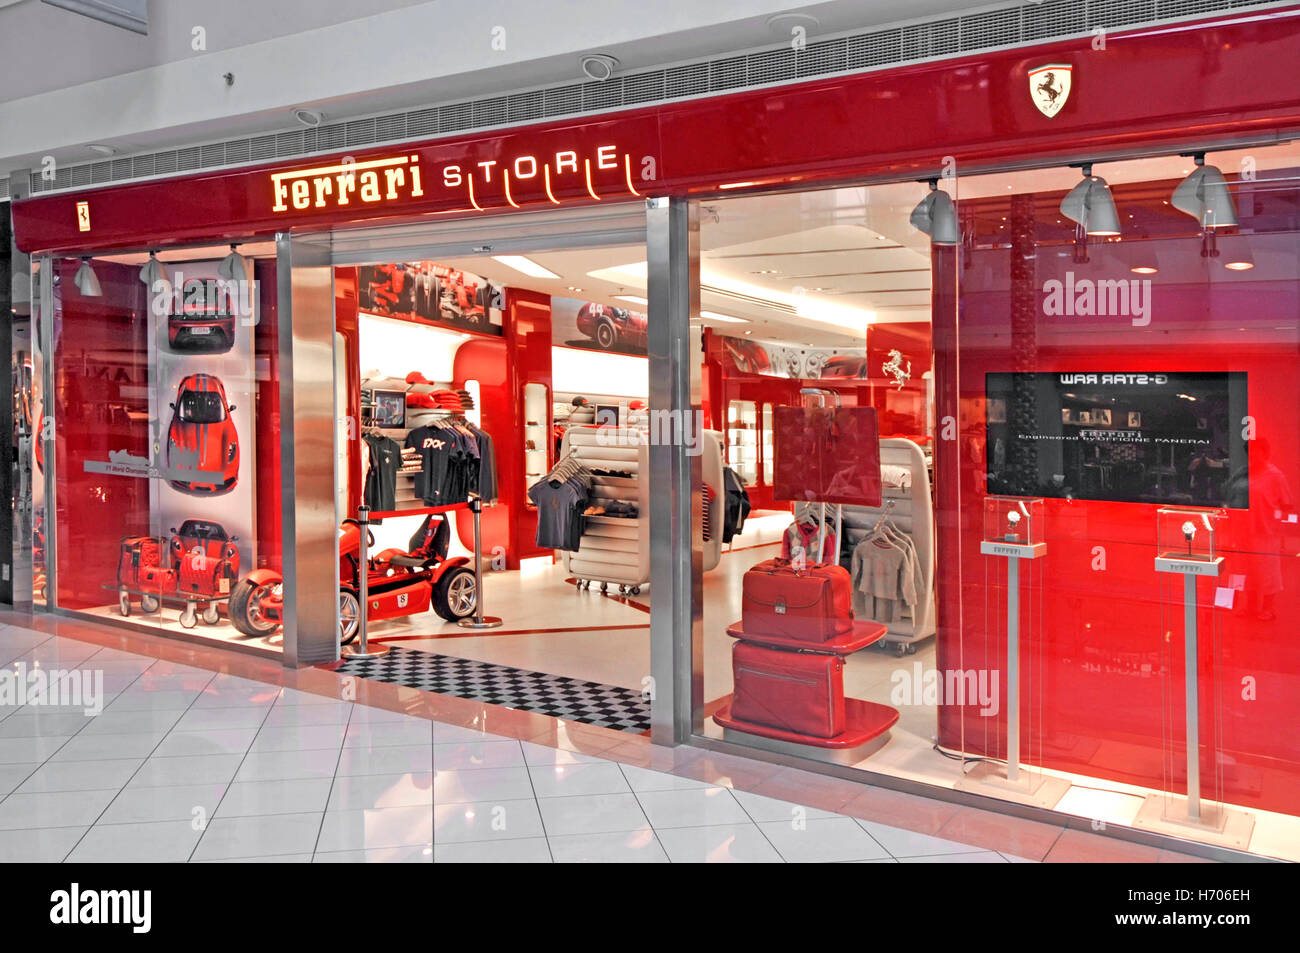 Uae Abu Dhabi Marina Shopping Mall Ferrari Store And Shop